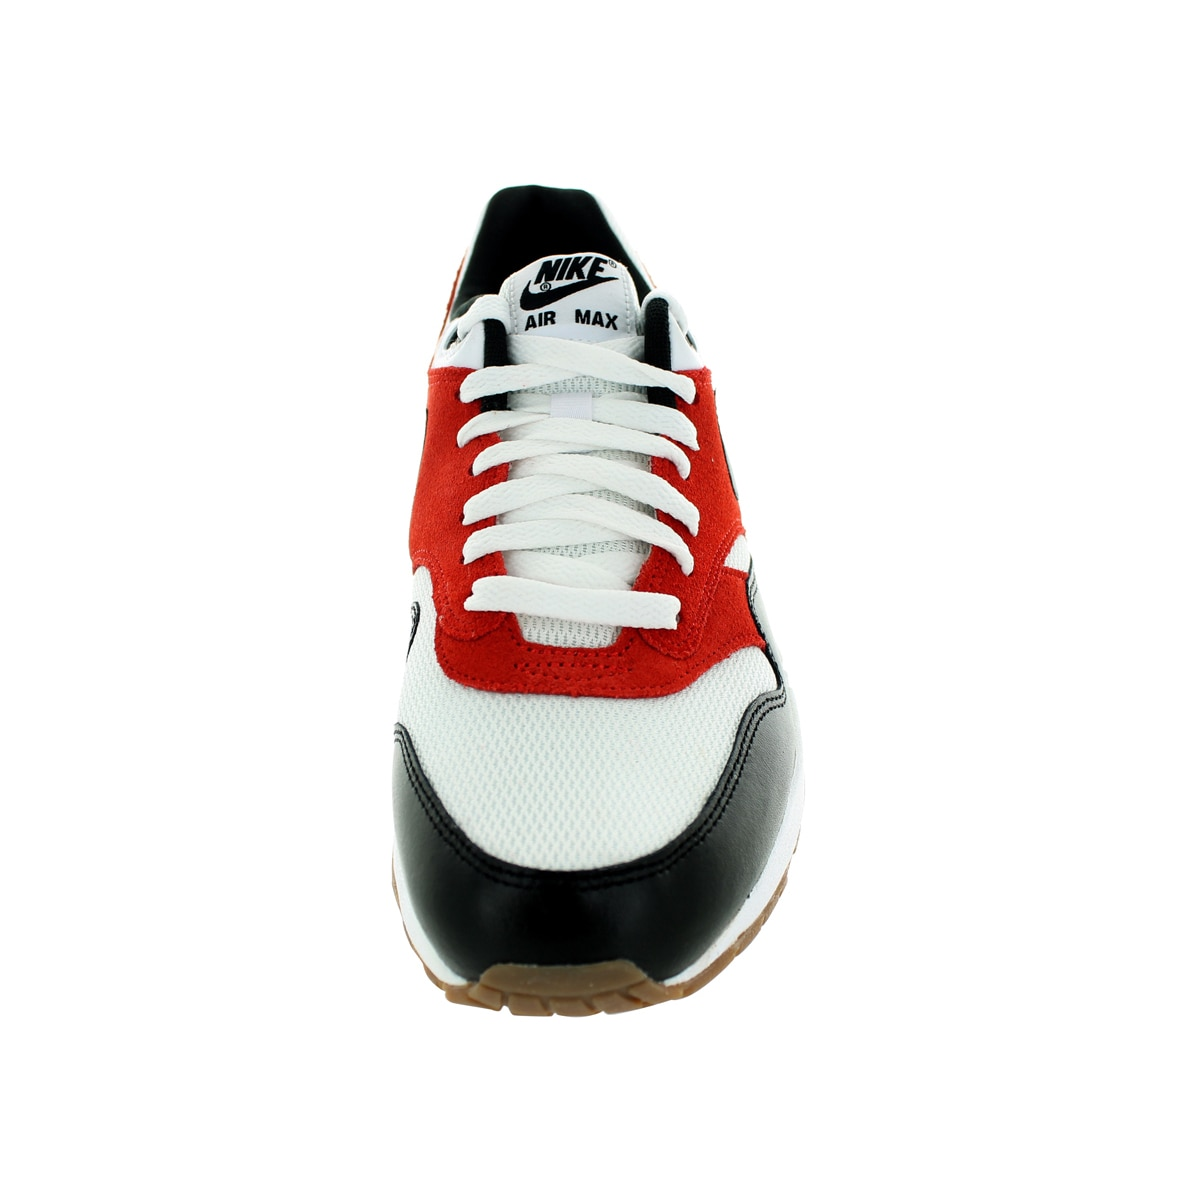 037d697472 Shop Nike Men's Air Max 1 Essential White/Black/Gamma Orange Running Shoe -  Ships To Canada - Overstock - 12118157